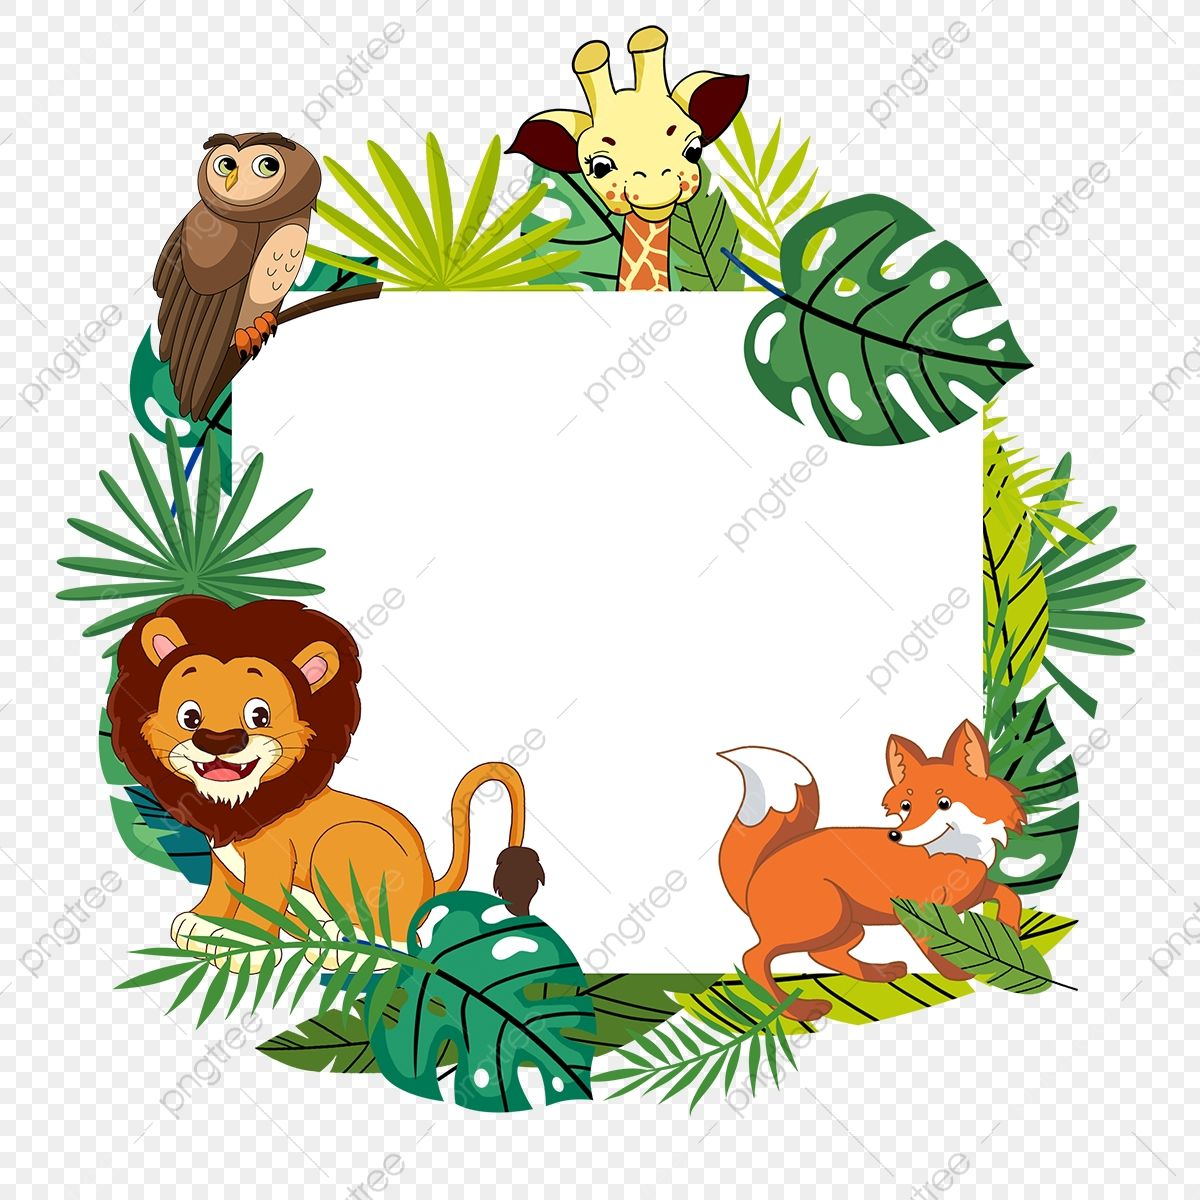 Jungle Giraffe Lion Fox Animal Border Element Animal Forest Leaf Png Transparent Clipart Image And Psd File For Free Download Pet Fox Pet Monkey Jungle